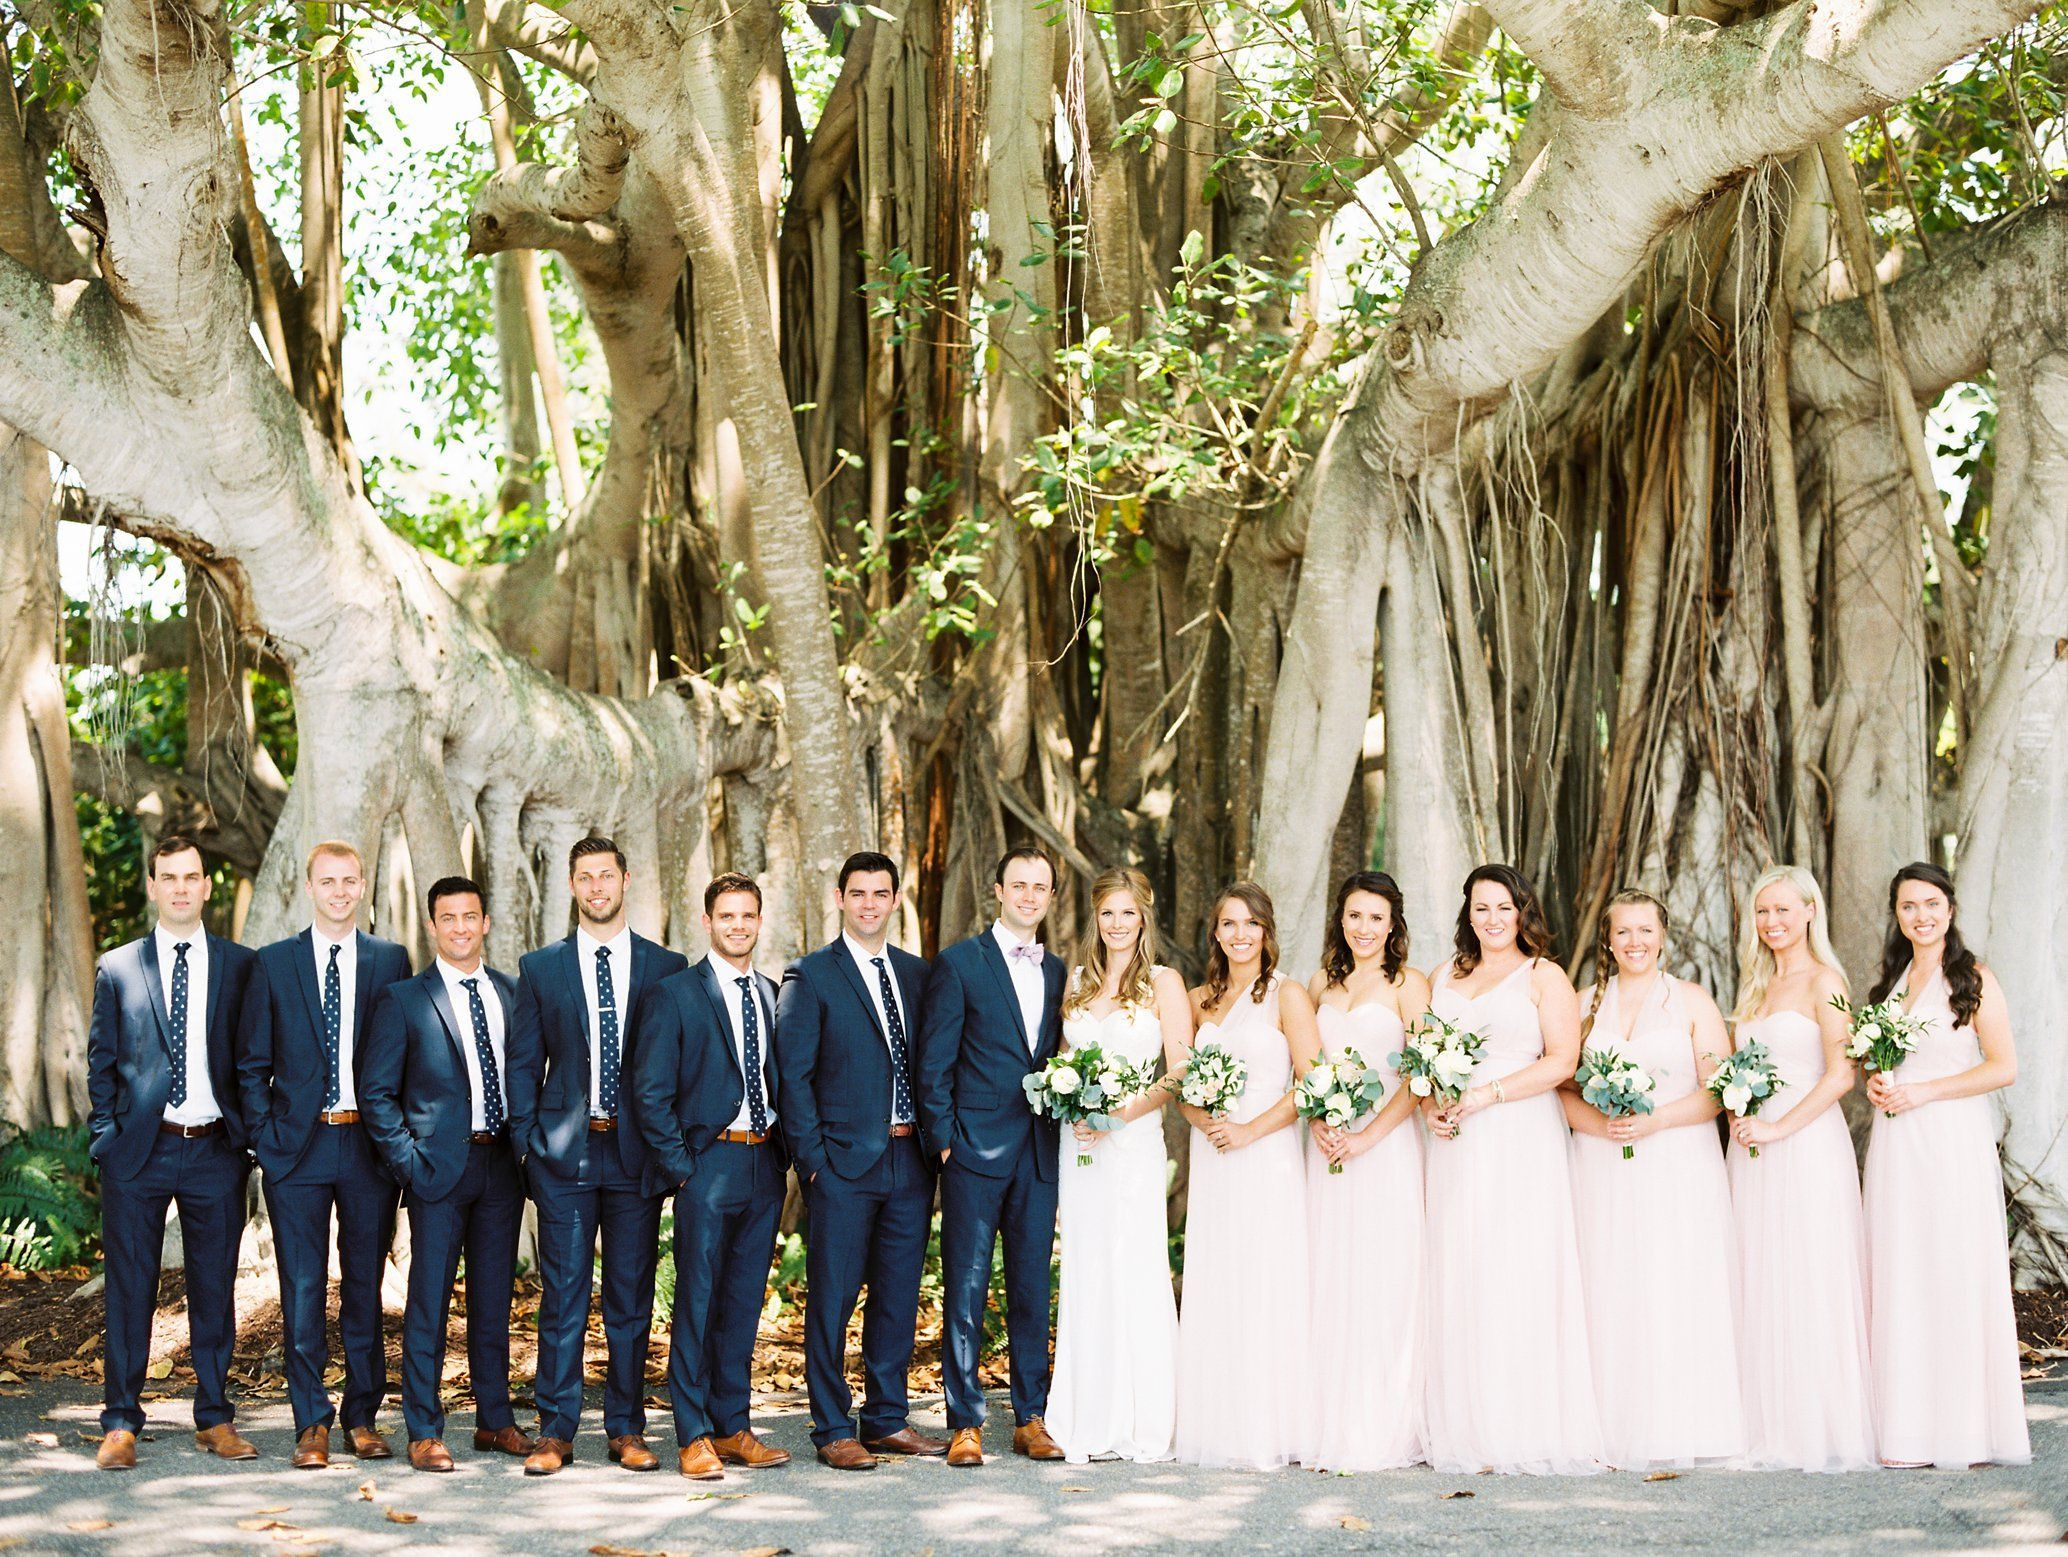 40 Best Of Small Wedding Venues Orlando Images Orlando Wedding Venues Island Weddings Wedding